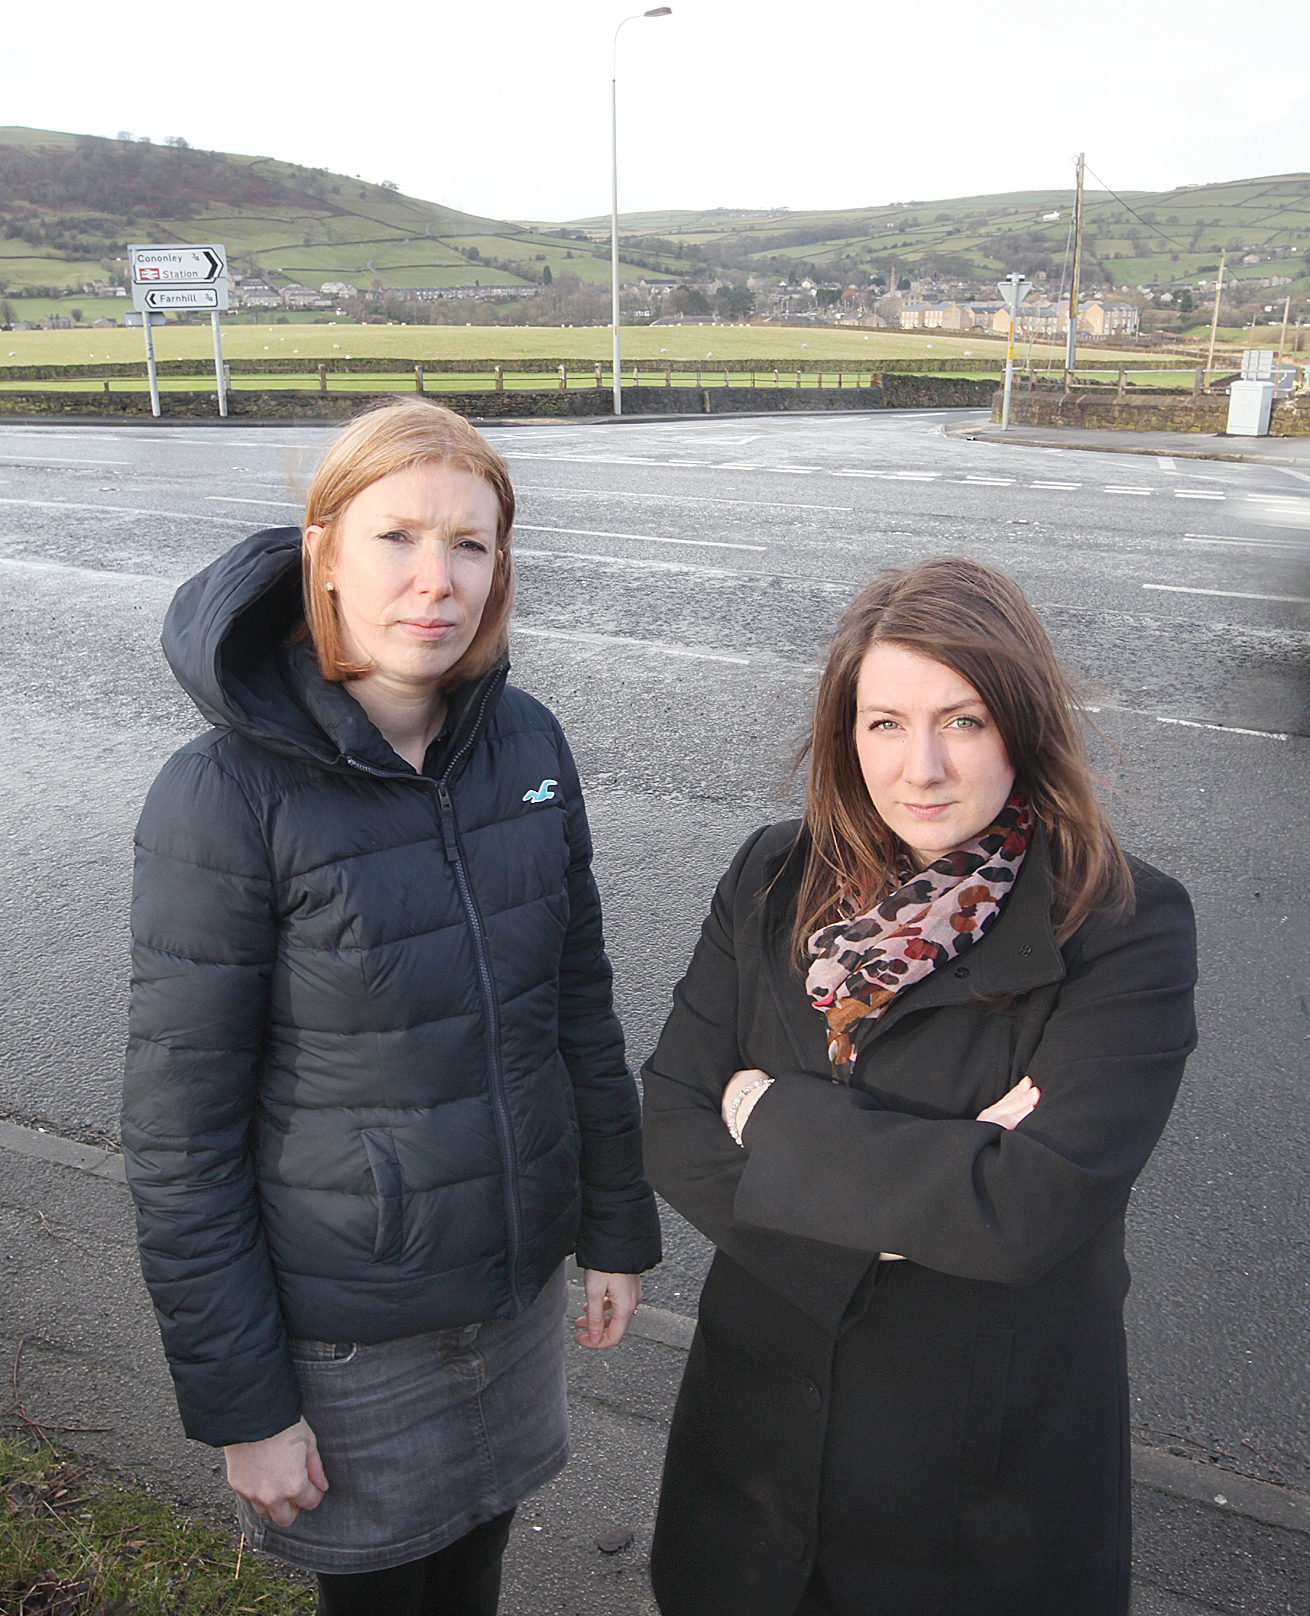 Cononley and Farnhill councillors, Lois Brown and Gemma Harling, lobby for improvements to the dangerous Cononley Lane Ends junction on the A629